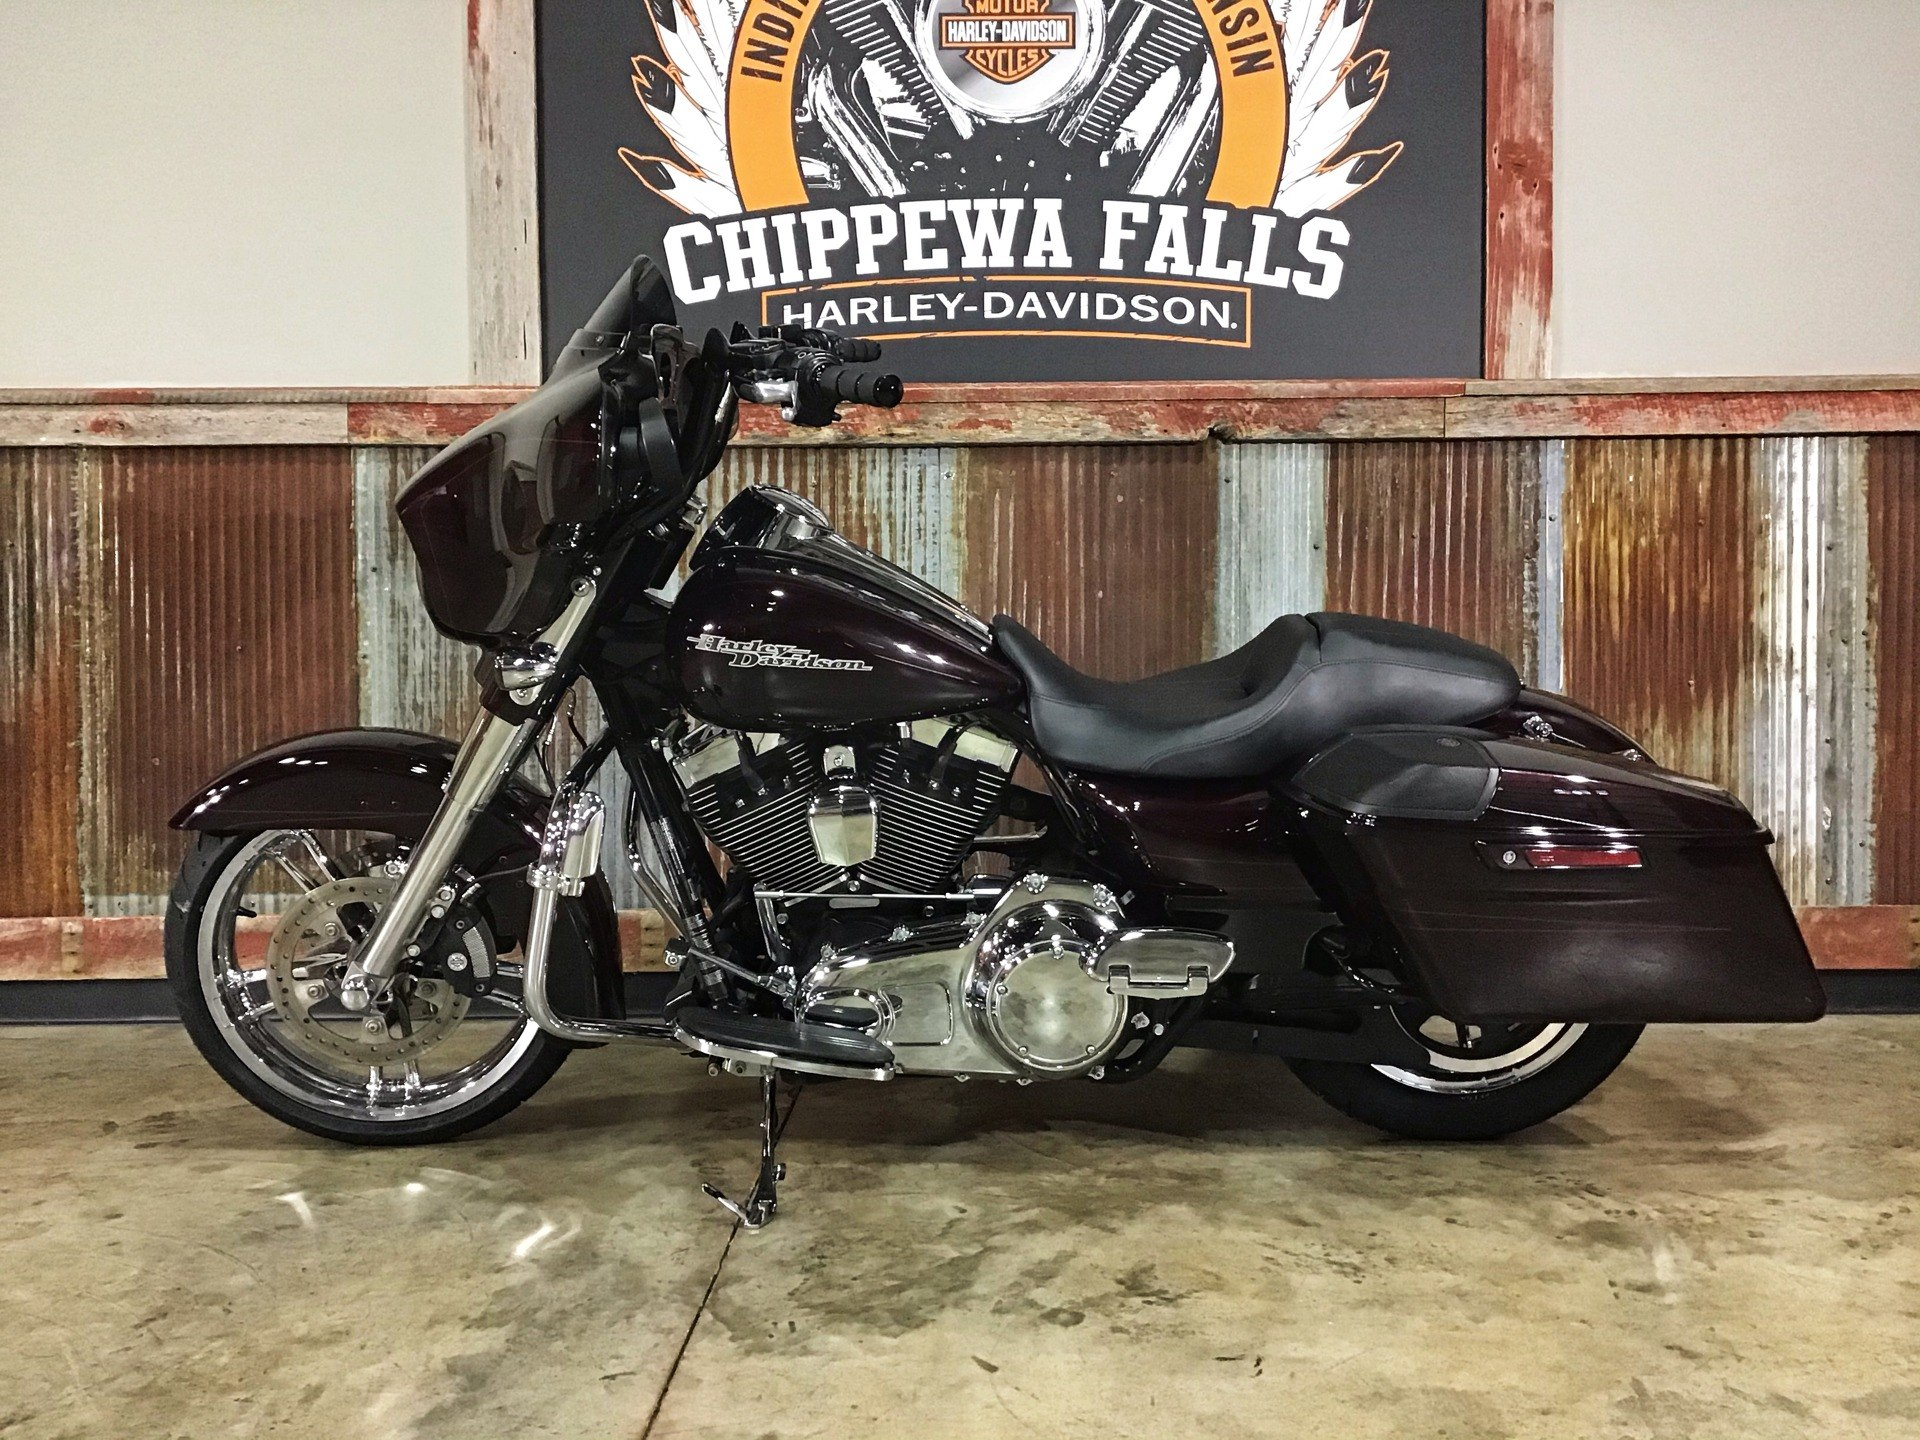 2014 Harley-Davidson Street Glide® Special in Chippewa Falls, Wisconsin - Photo 22